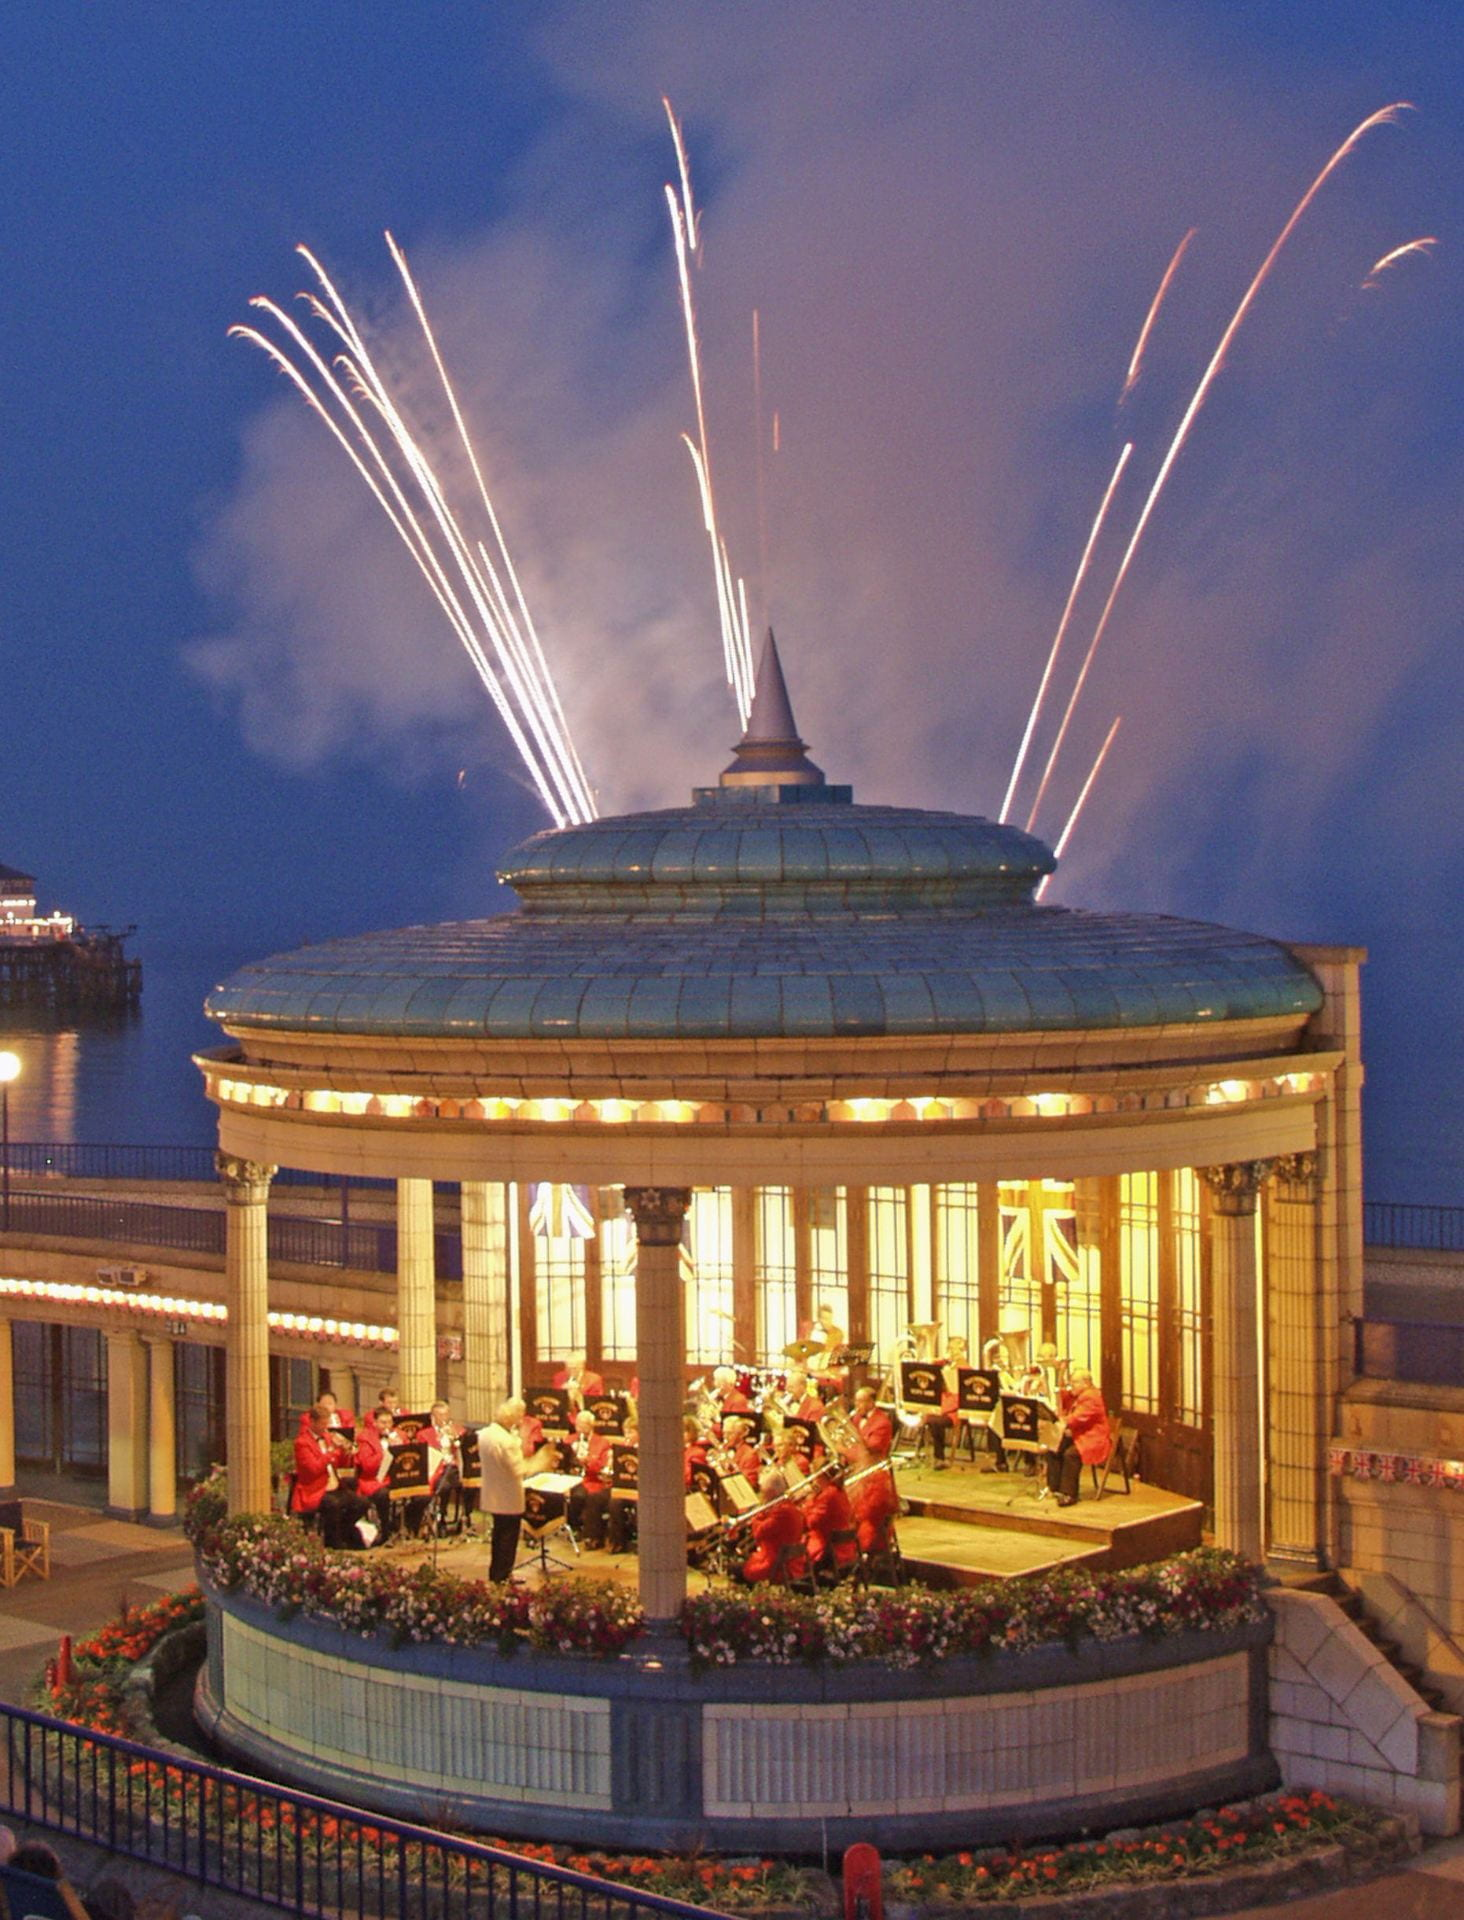 A band playing on Eastbourne bandstand